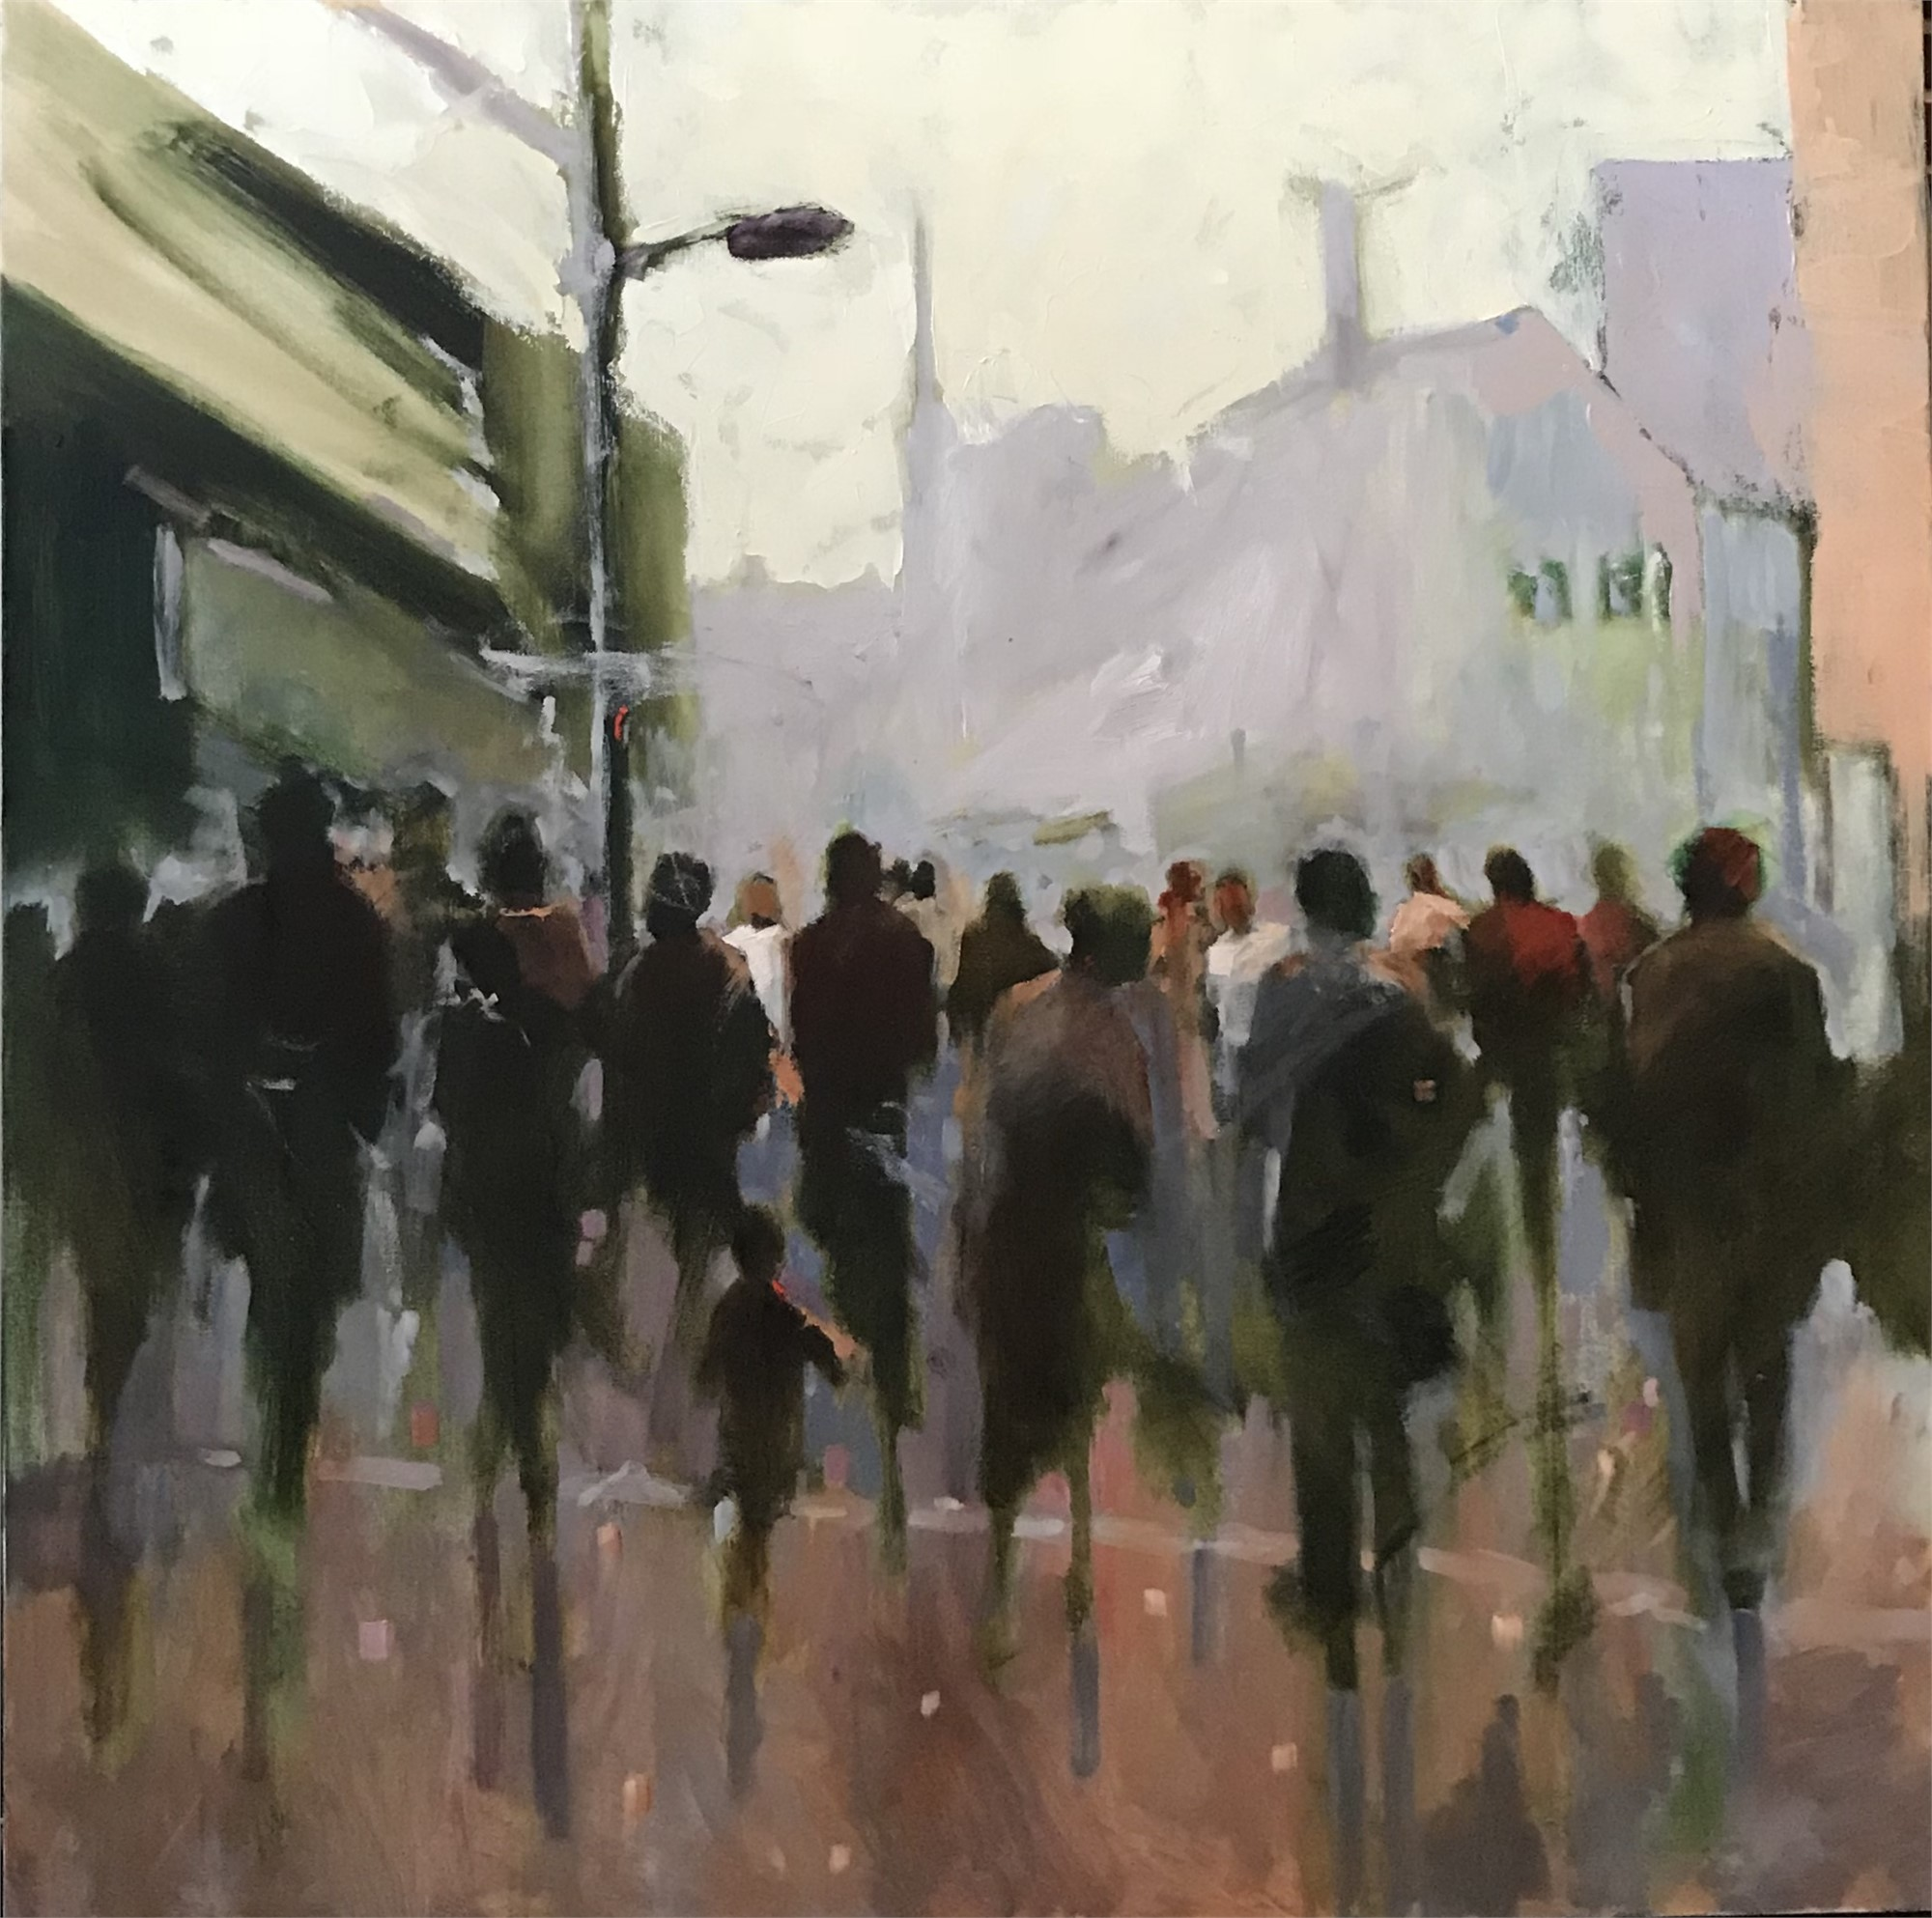 In Town by Betsy Havens